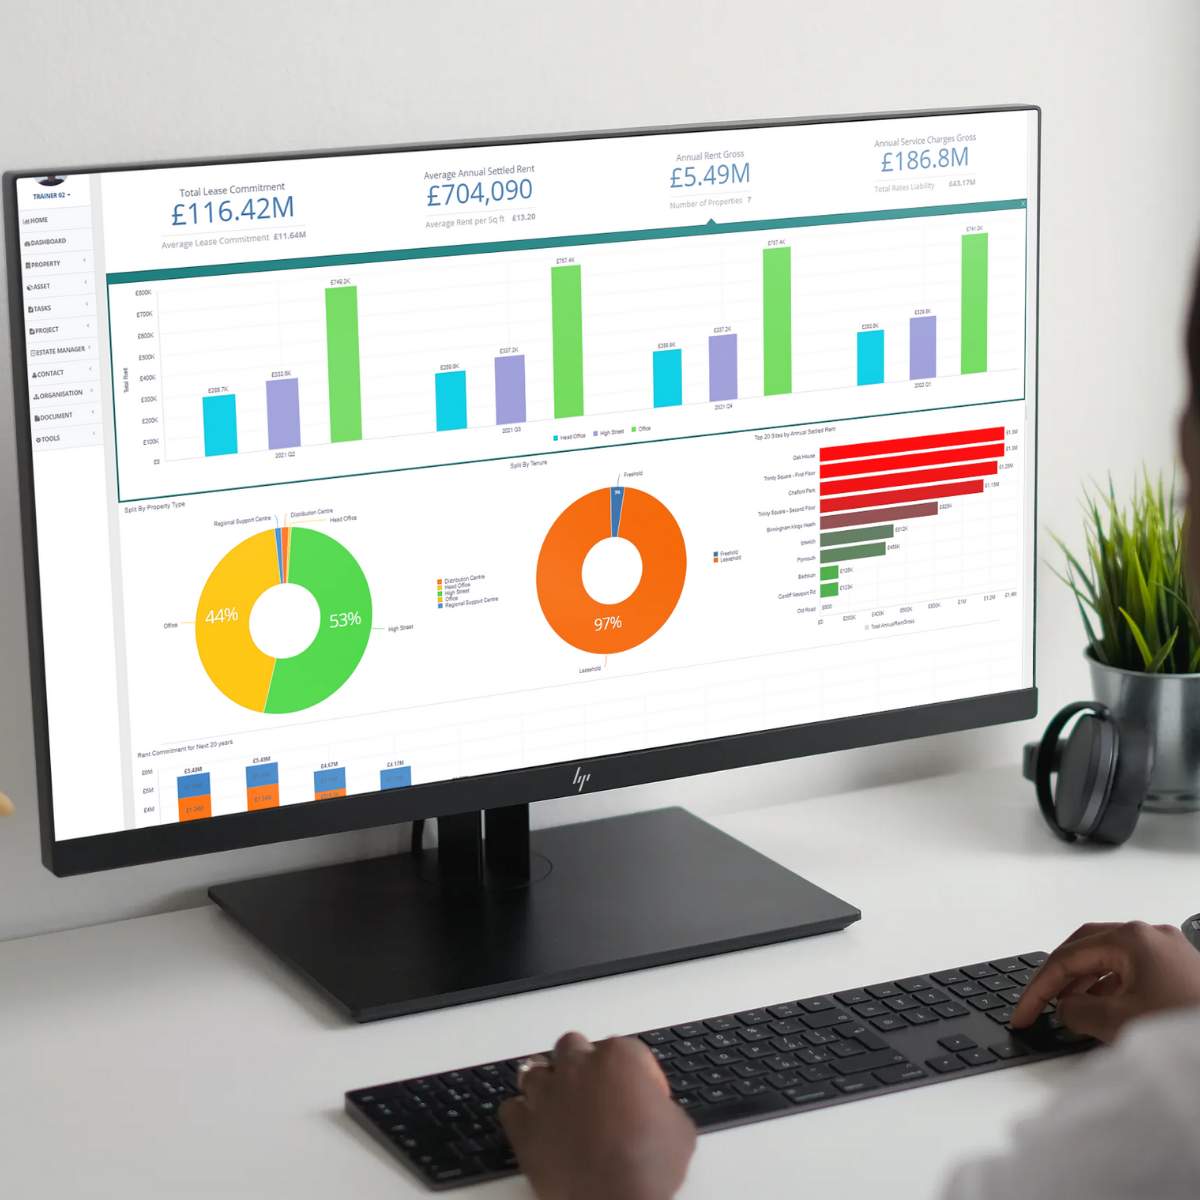 iSite Lite Software - The value of having all of your data in one system is the detail of the reports that you can make to visualise it all, helping you make key strategic decisions with a holistic view of all of your portfolio